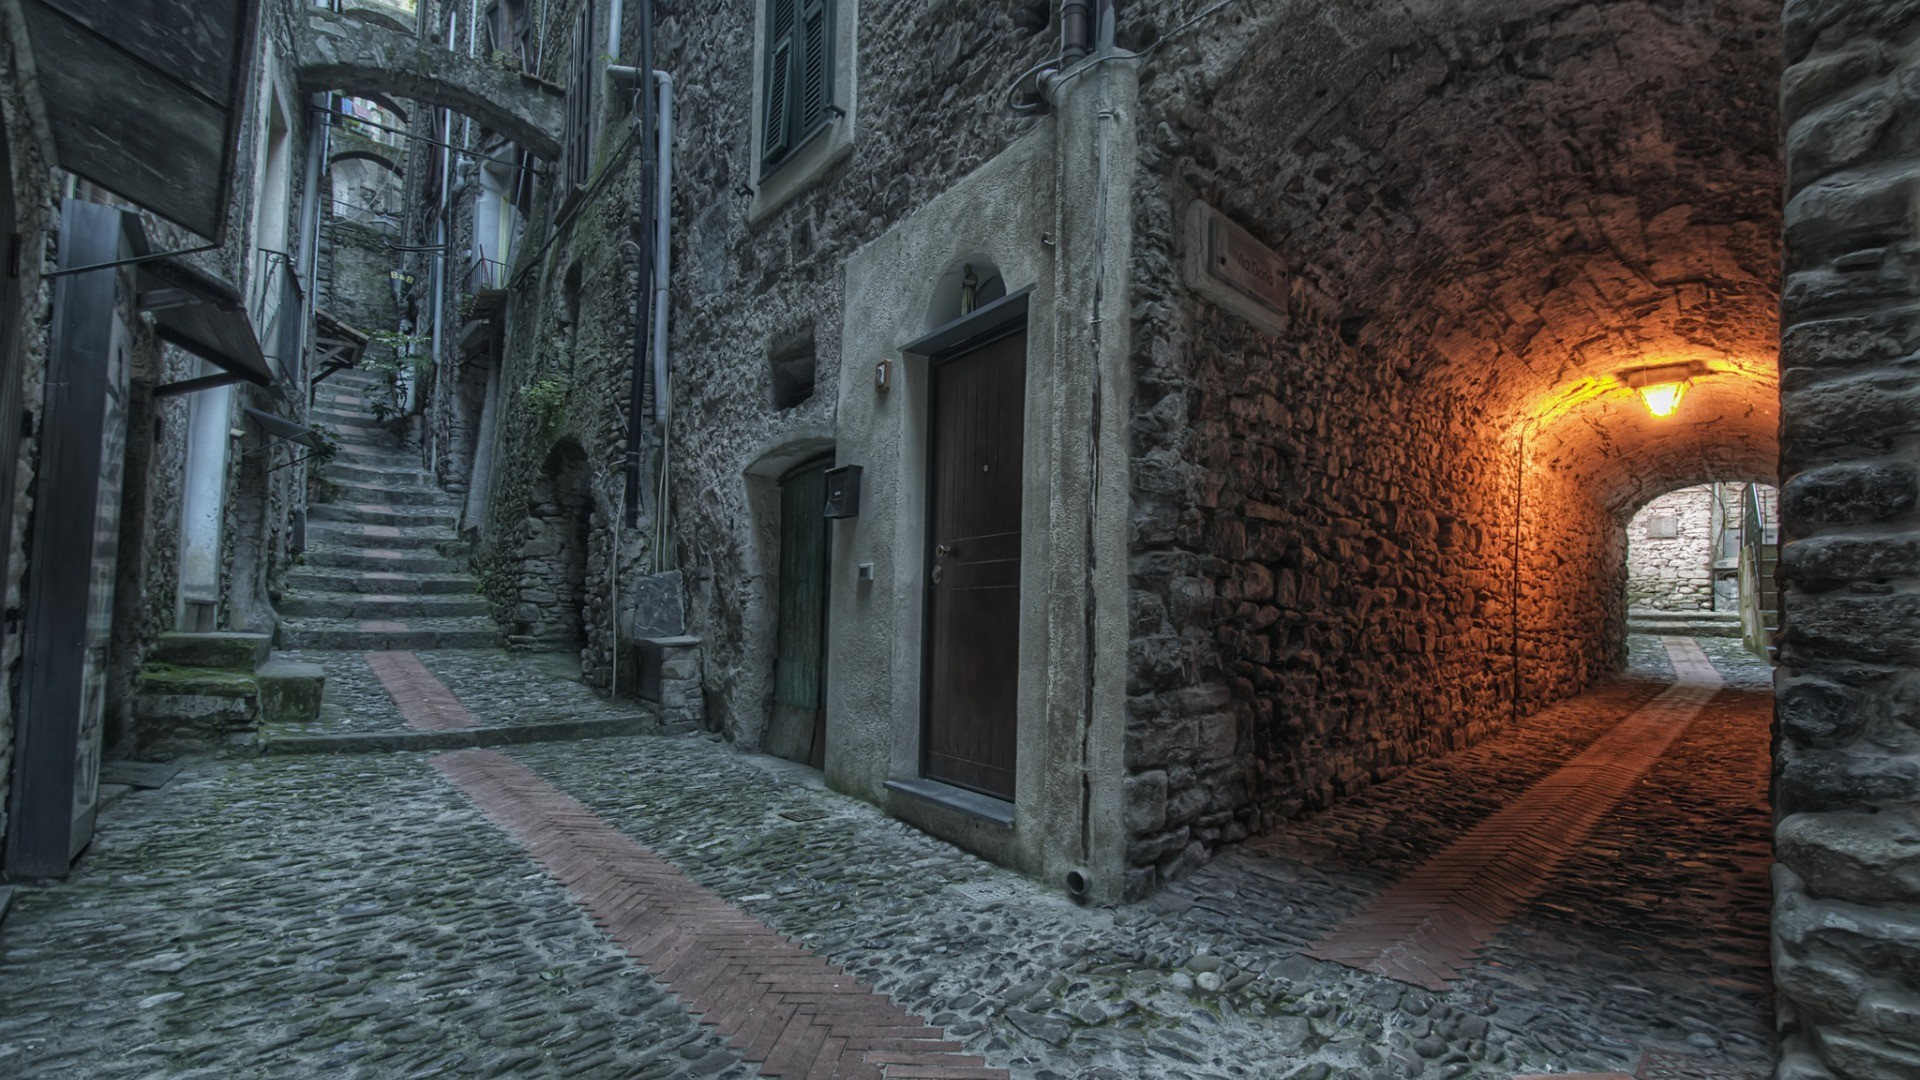 General architecture old building town street urban lights stairs  door stones house arch